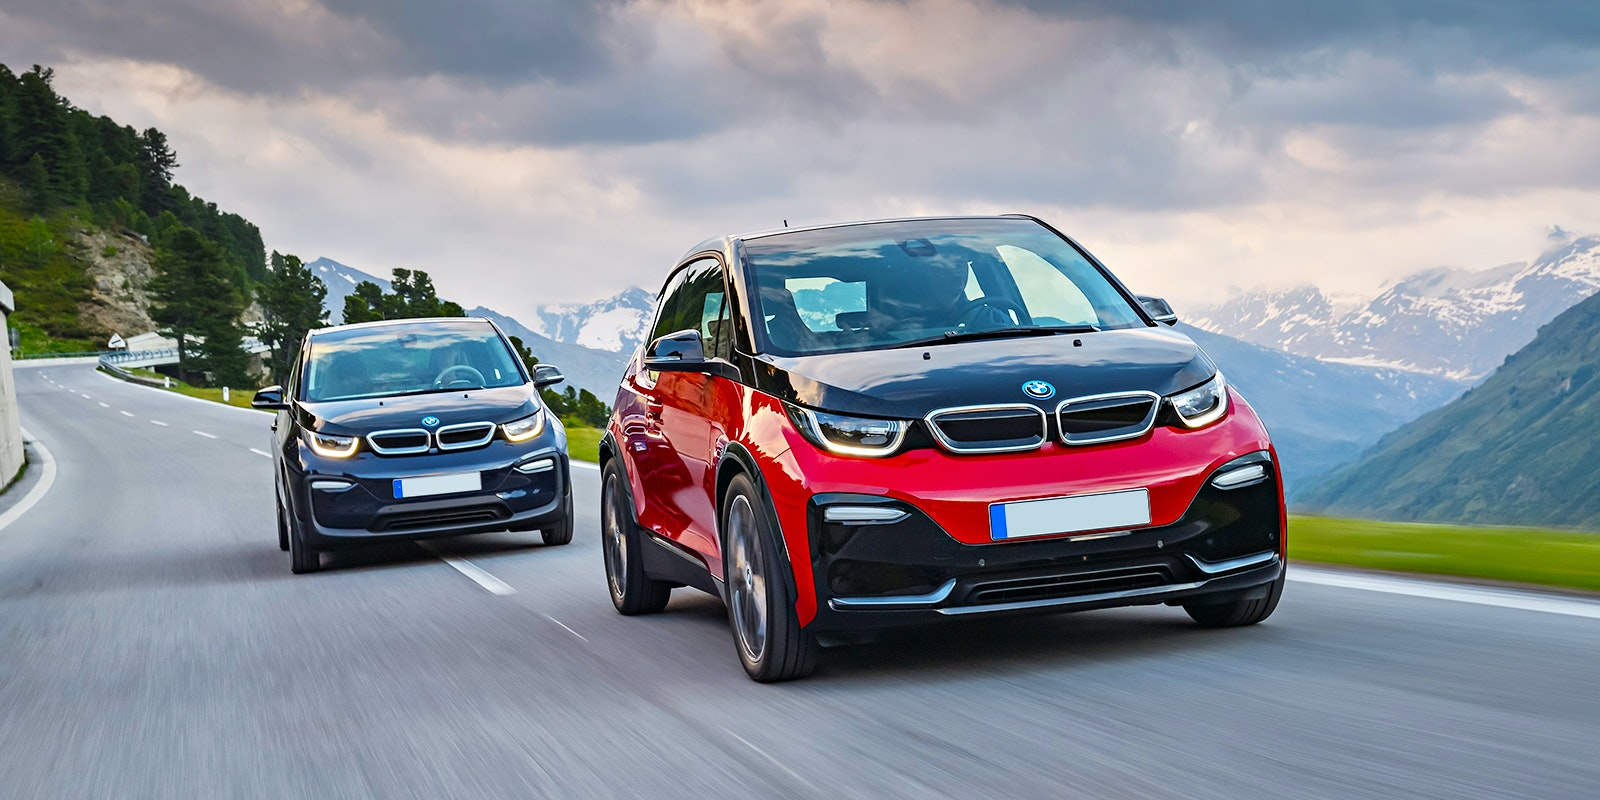 Facelifted Bmw I3 And I3s Price Specs And Release Date Carwow